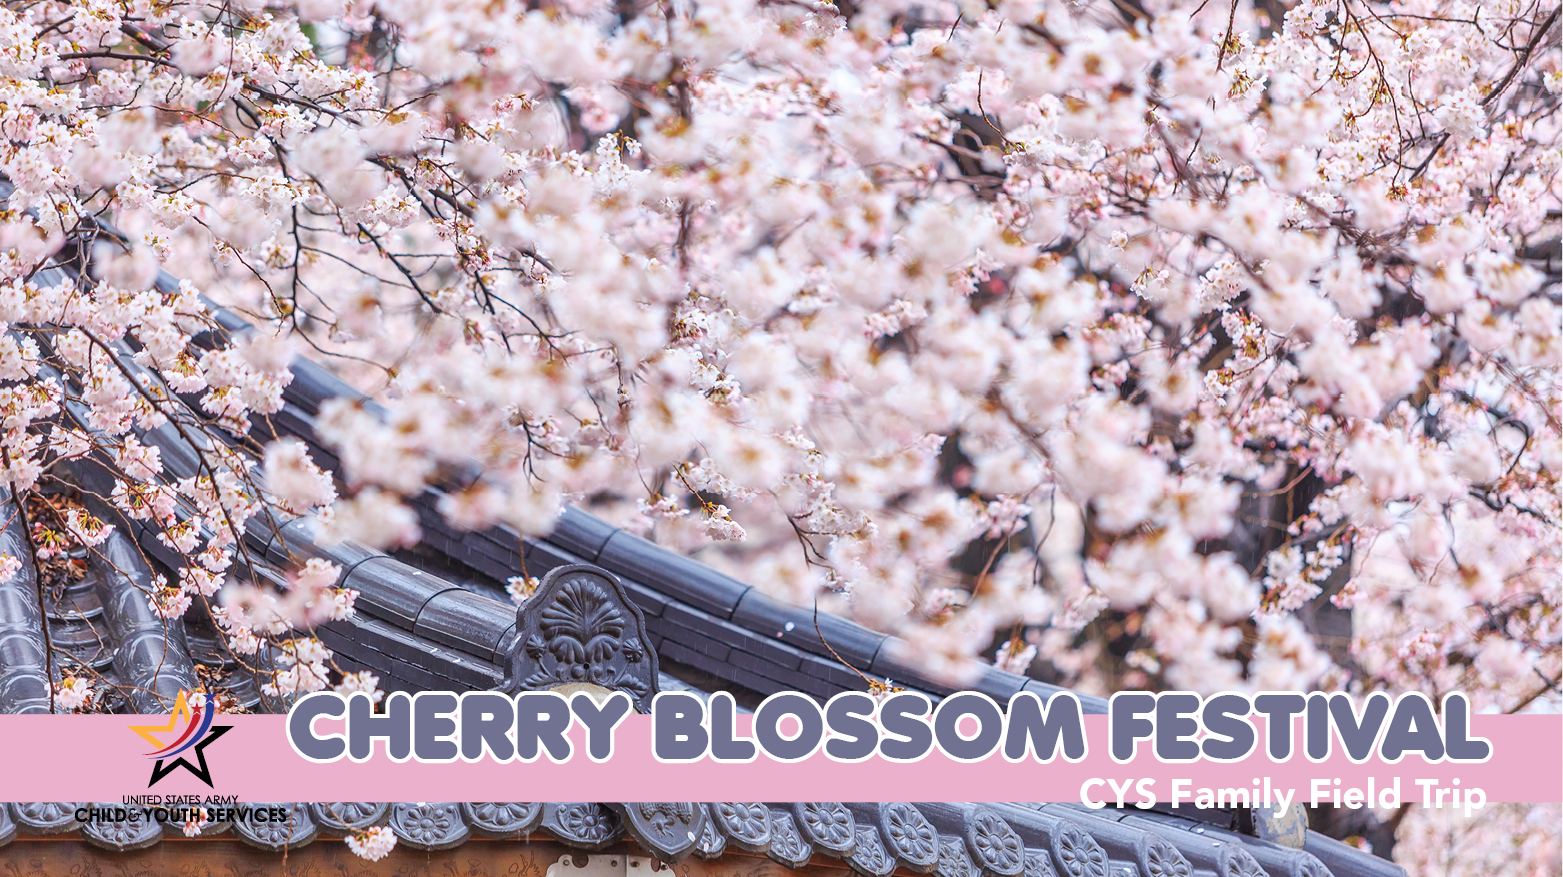 CYS Family Field Trip - Cherry Blossom Festival